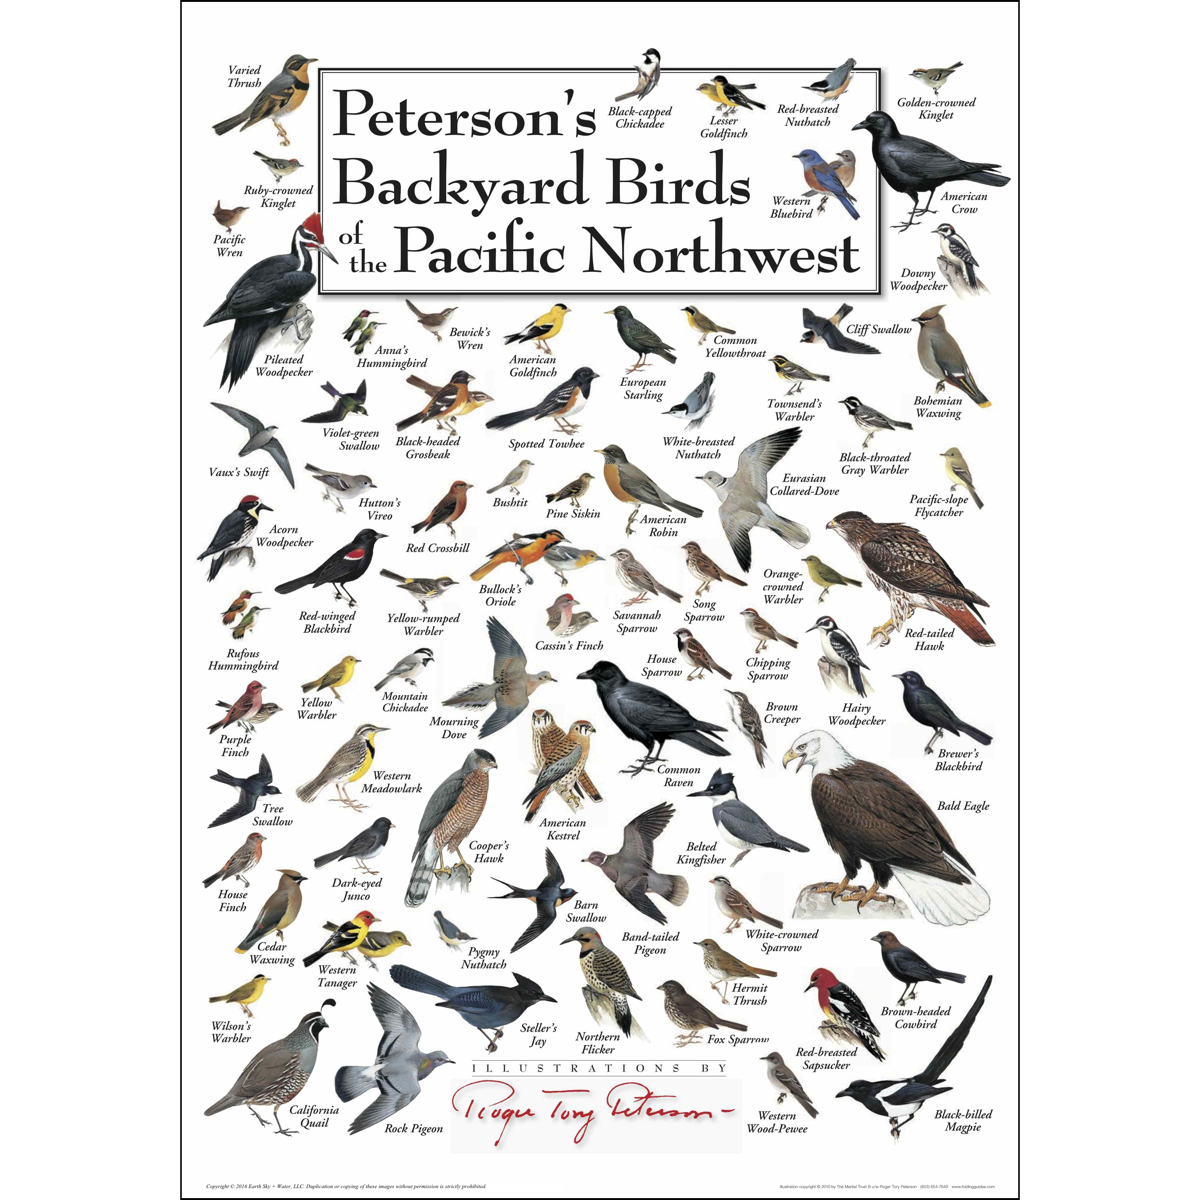 Peterson's Backyard Birds of the Pacific Northwest ...